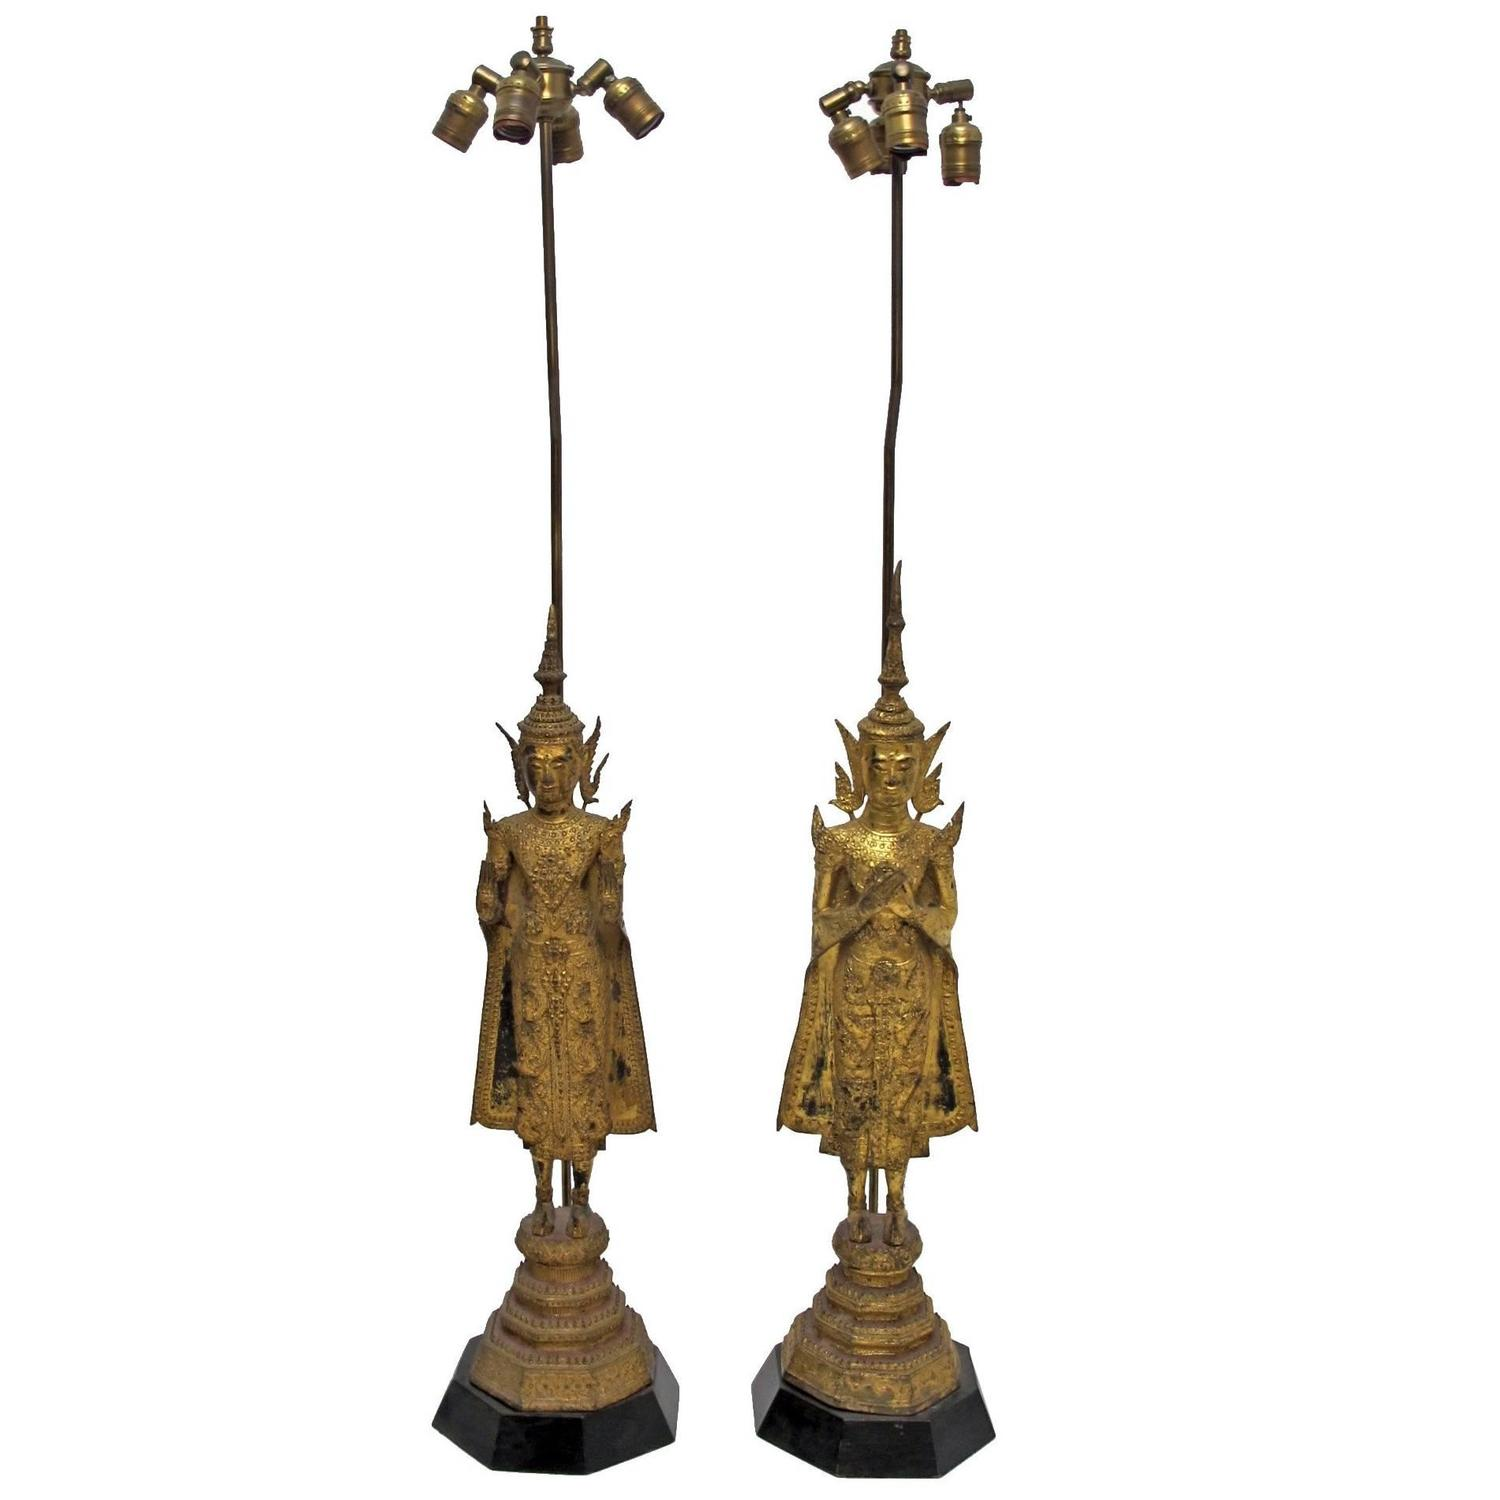 18th Century Thai Deity Gilt Bronze Figural Lamps For Sale at 1stdibs